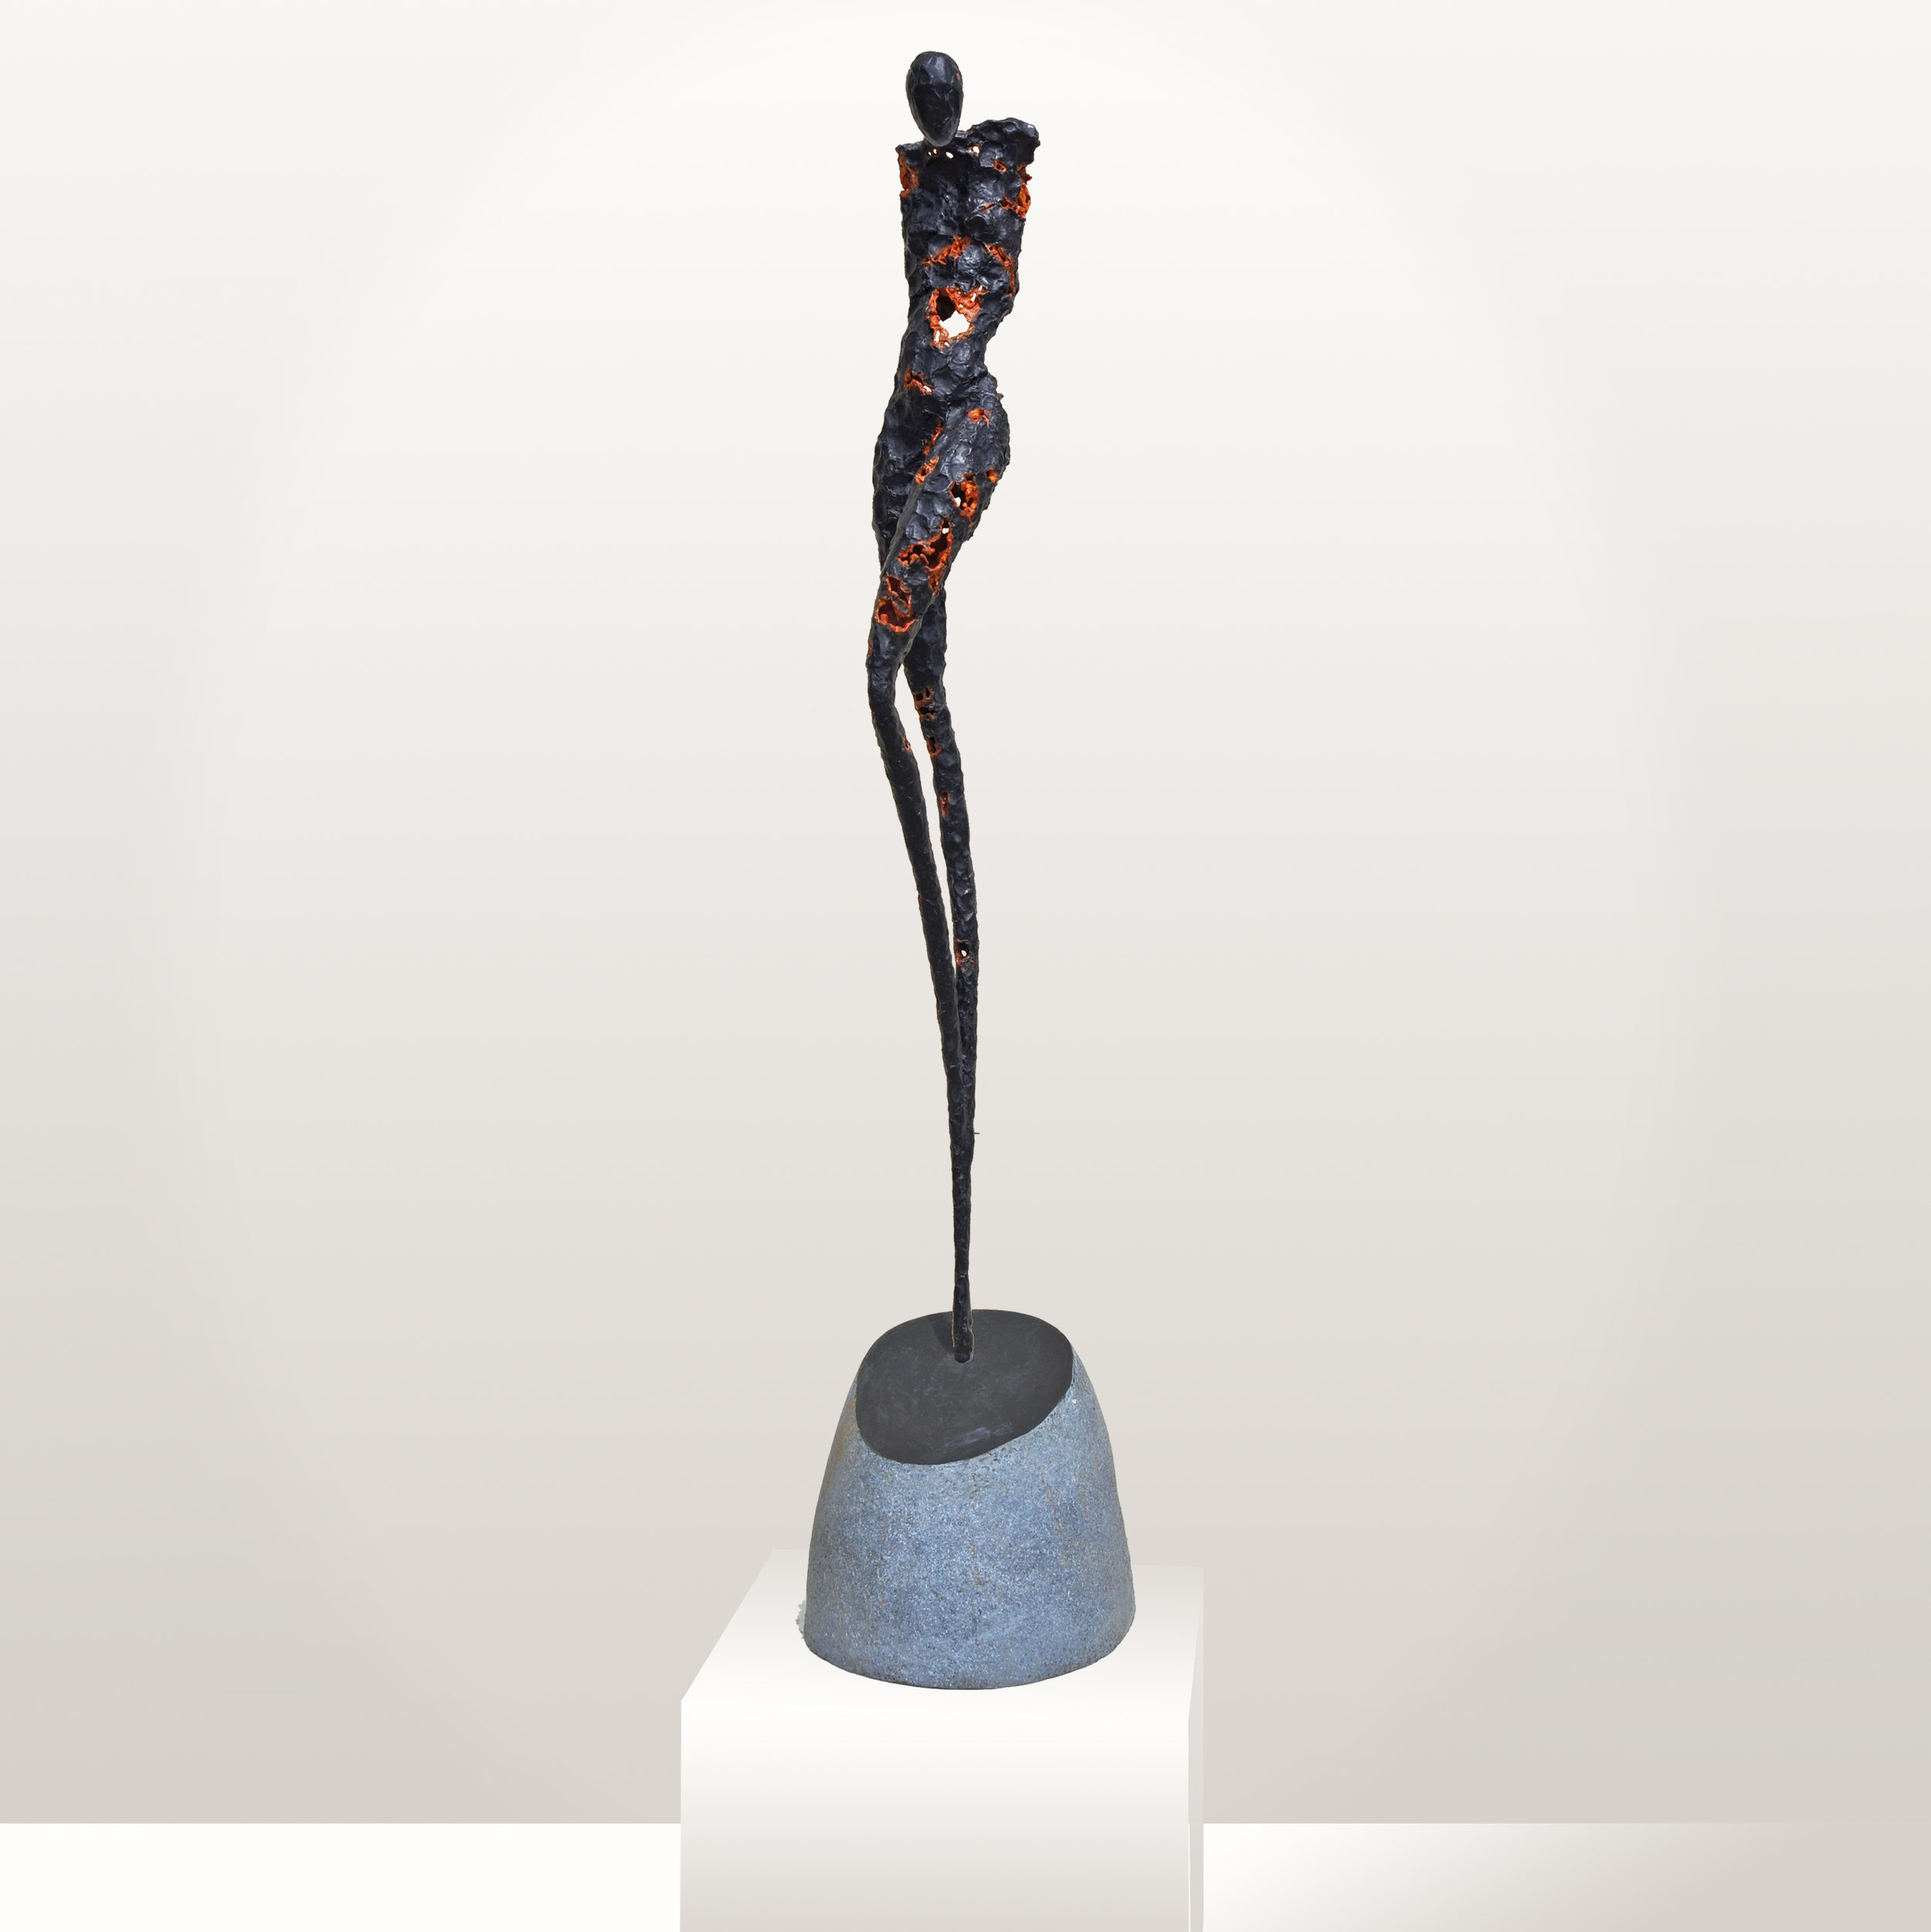 Figurative sculpture made from one-of-a-kind bronze